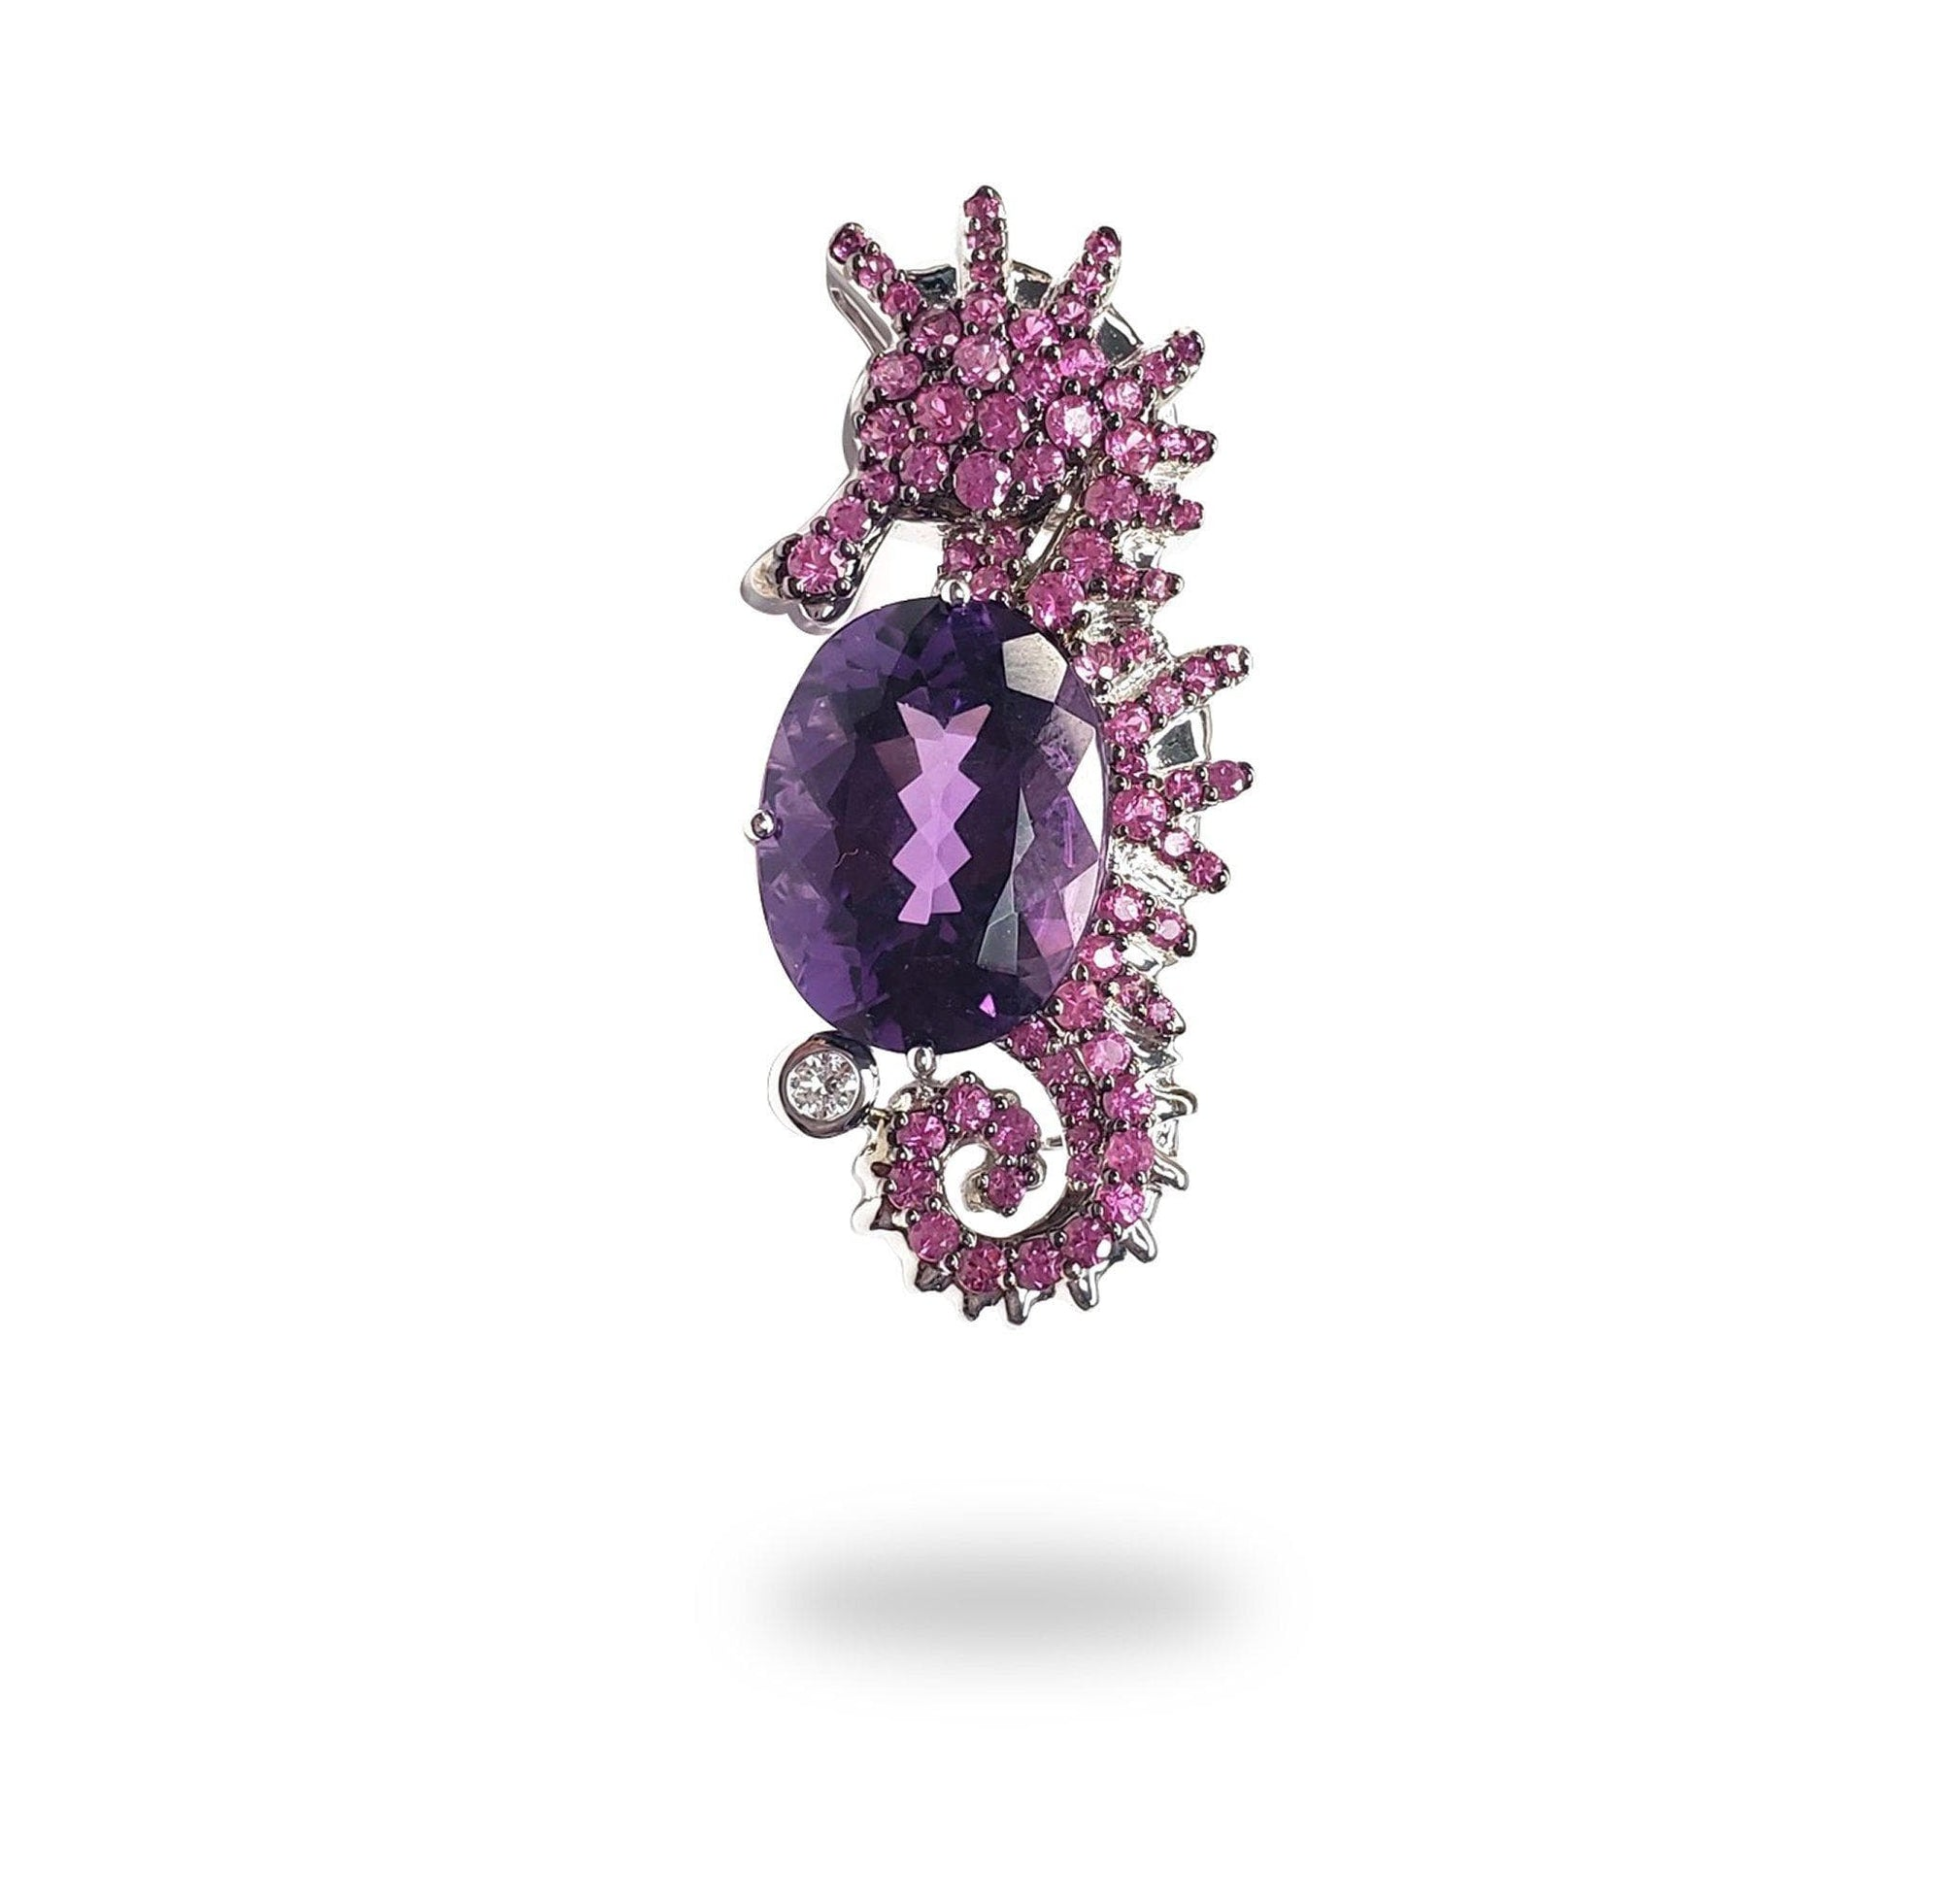 Seahorse Pendant with Pink Sapphires and Amethysts